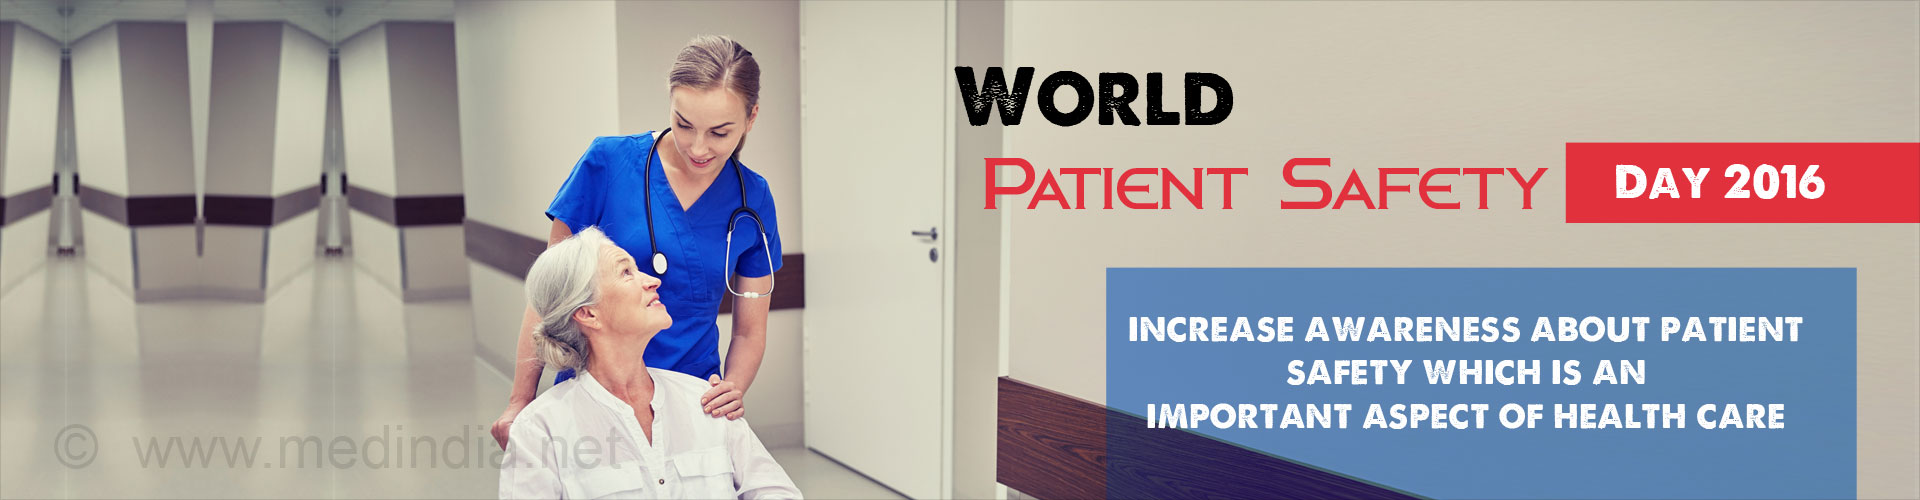 "World Patient Safety Day 2016: ""Importance of Patient Safety"""